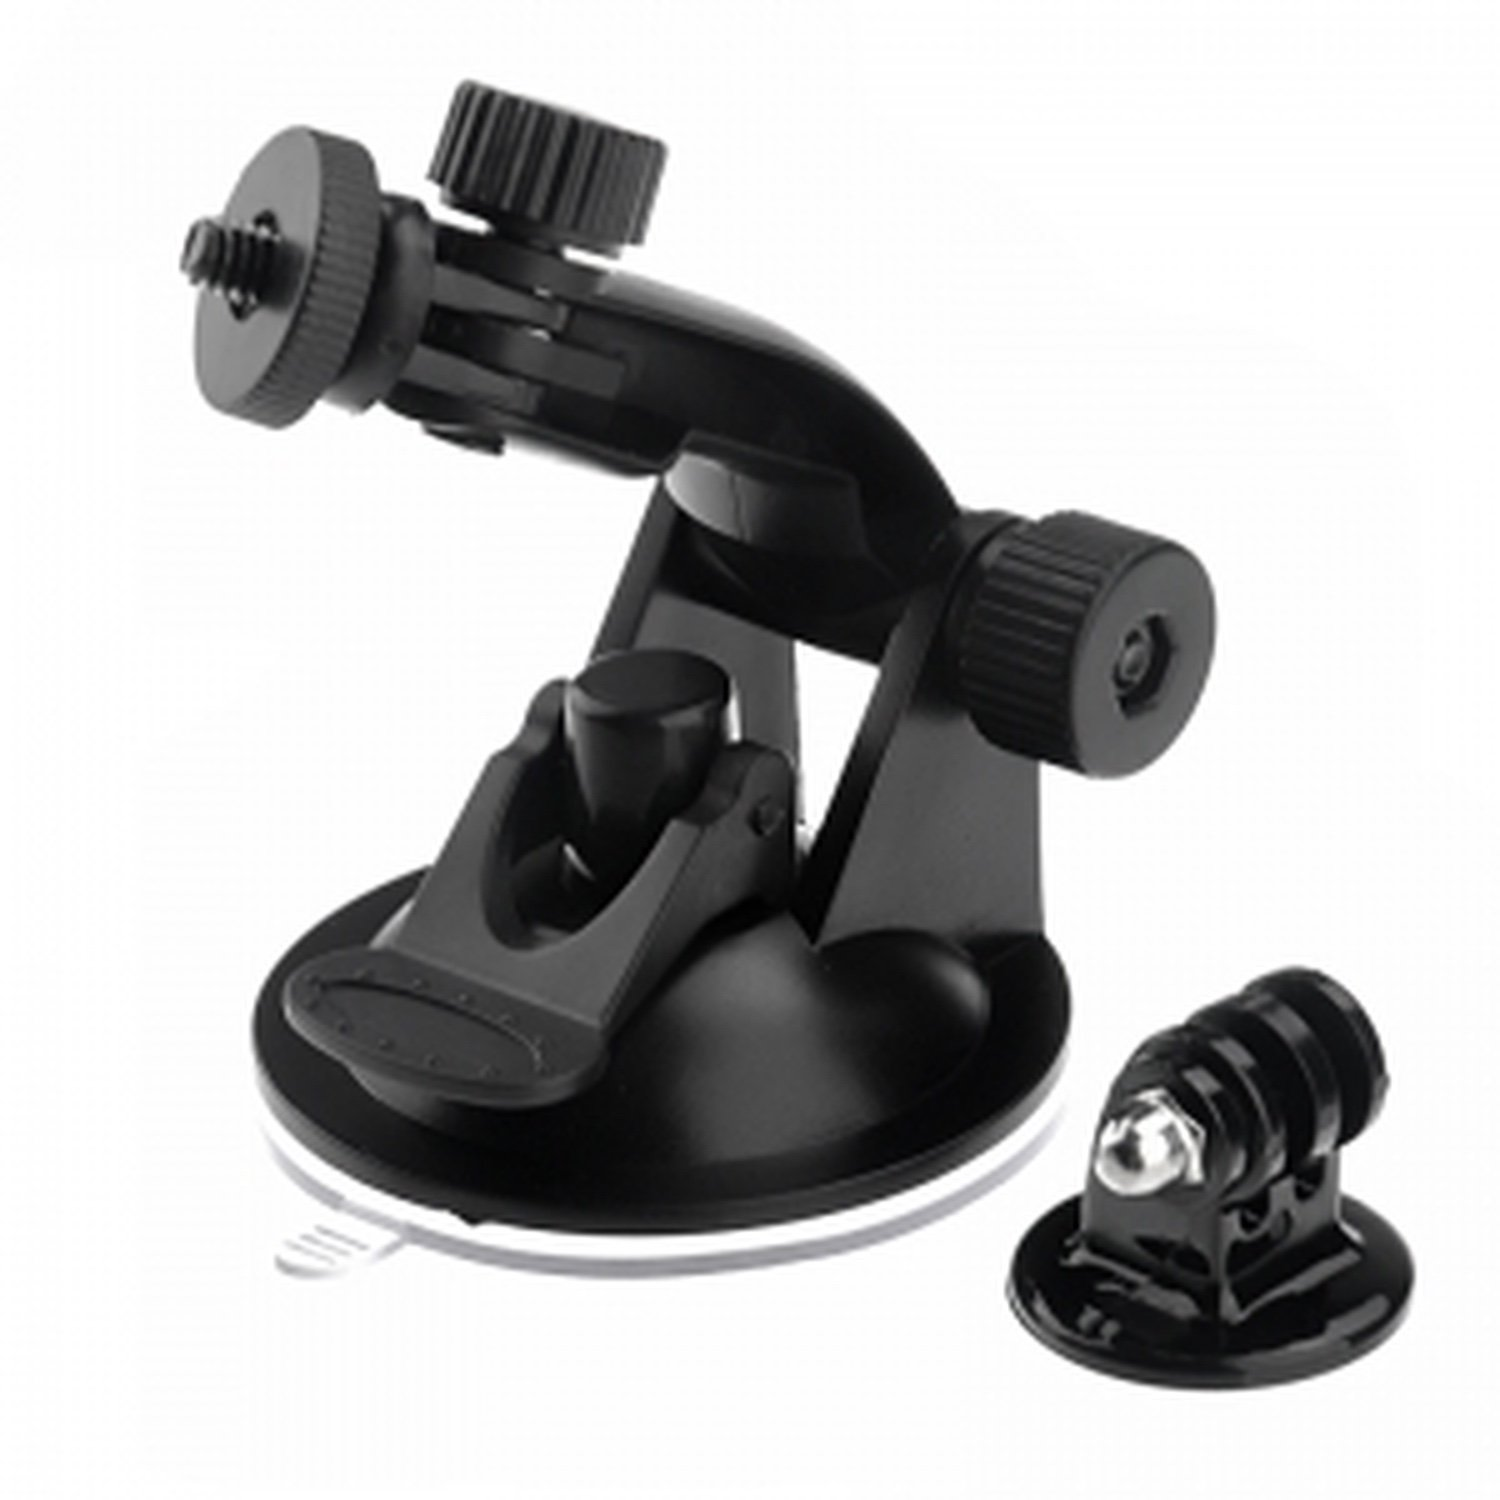 Suction Cup Windshield & Dash Car Mount for GoPro HERO HERO2 HERO3 & SJ4000 Camera dash camera junsun h9p